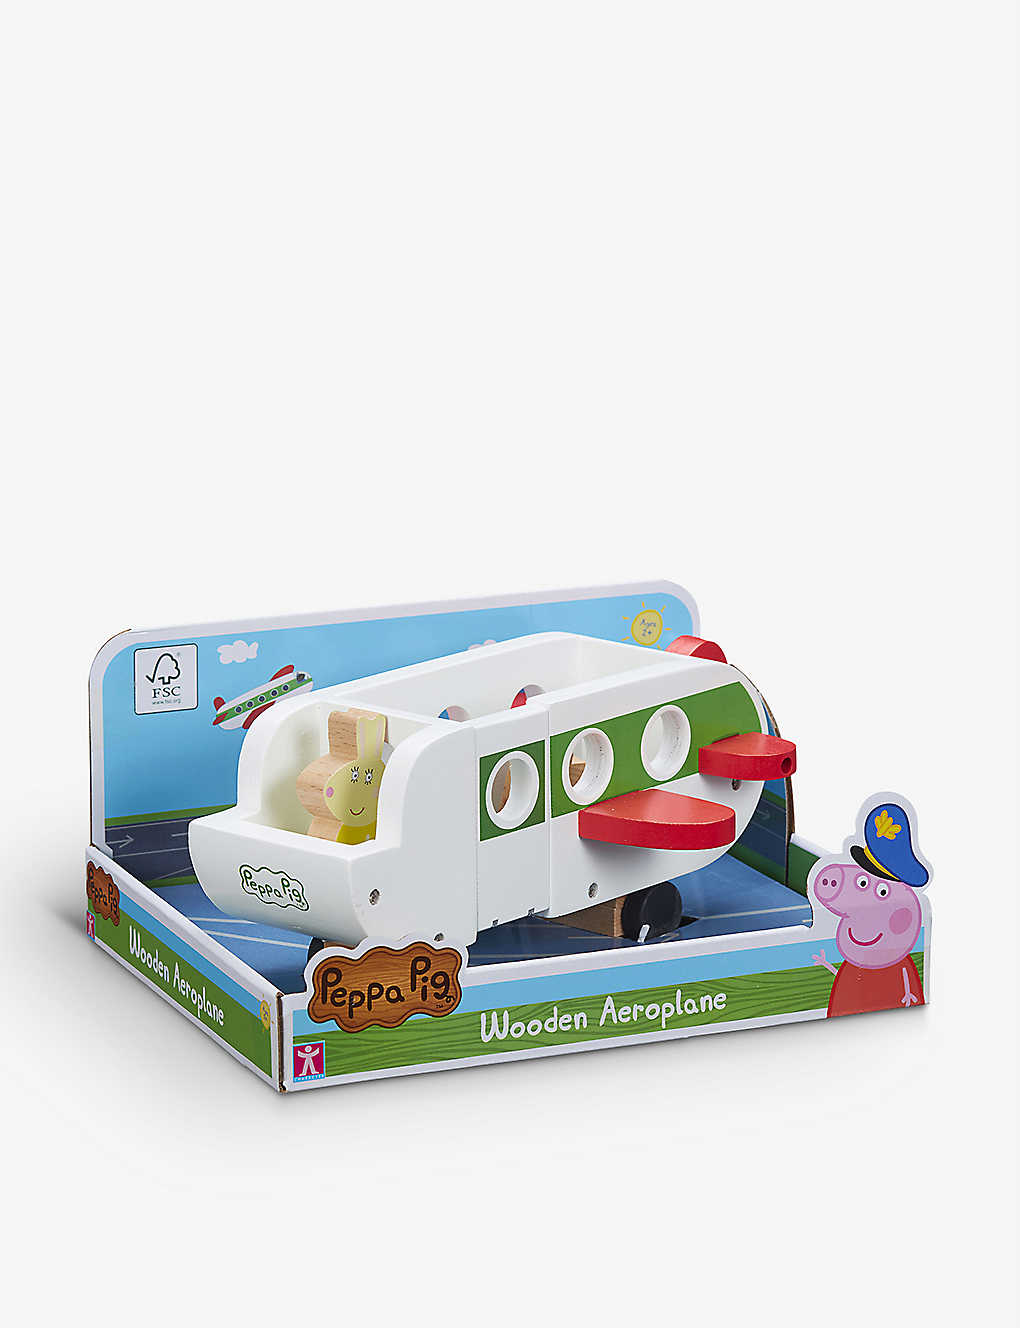 PEPPA PIG: Aeroplane wooden play set